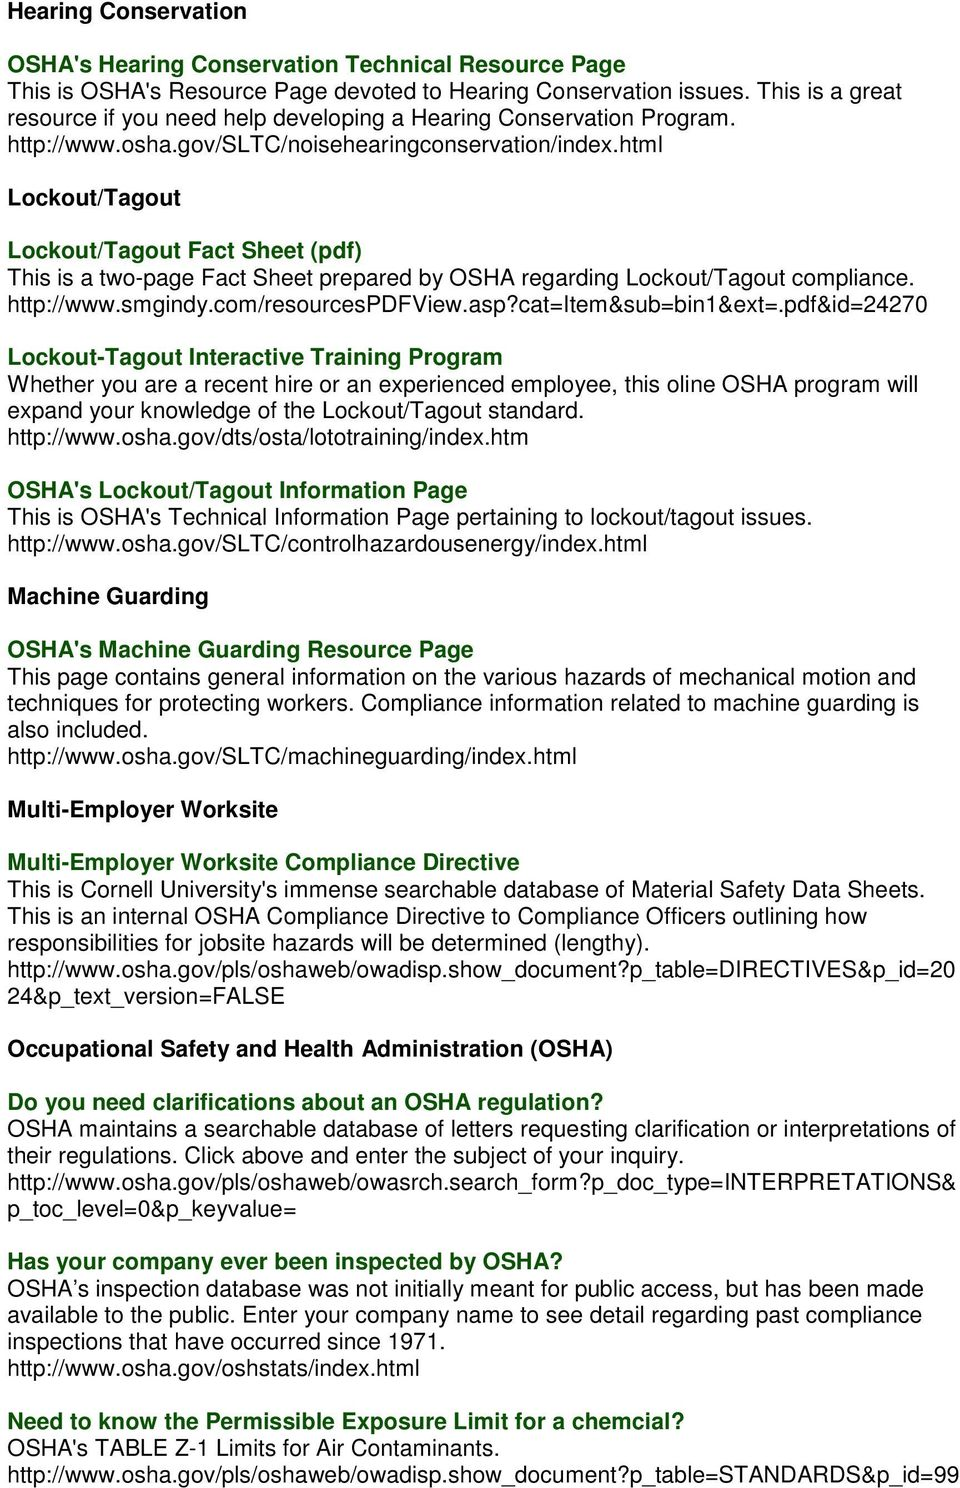 html Lockout/Tagout Lockout/Tagout Fact Sheet (pdf) This is a two-page Fact Sheet prepared by OSHA regarding Lockout/Tagout compliance. http://www.smgindy.com/resourcespdfview.asp?